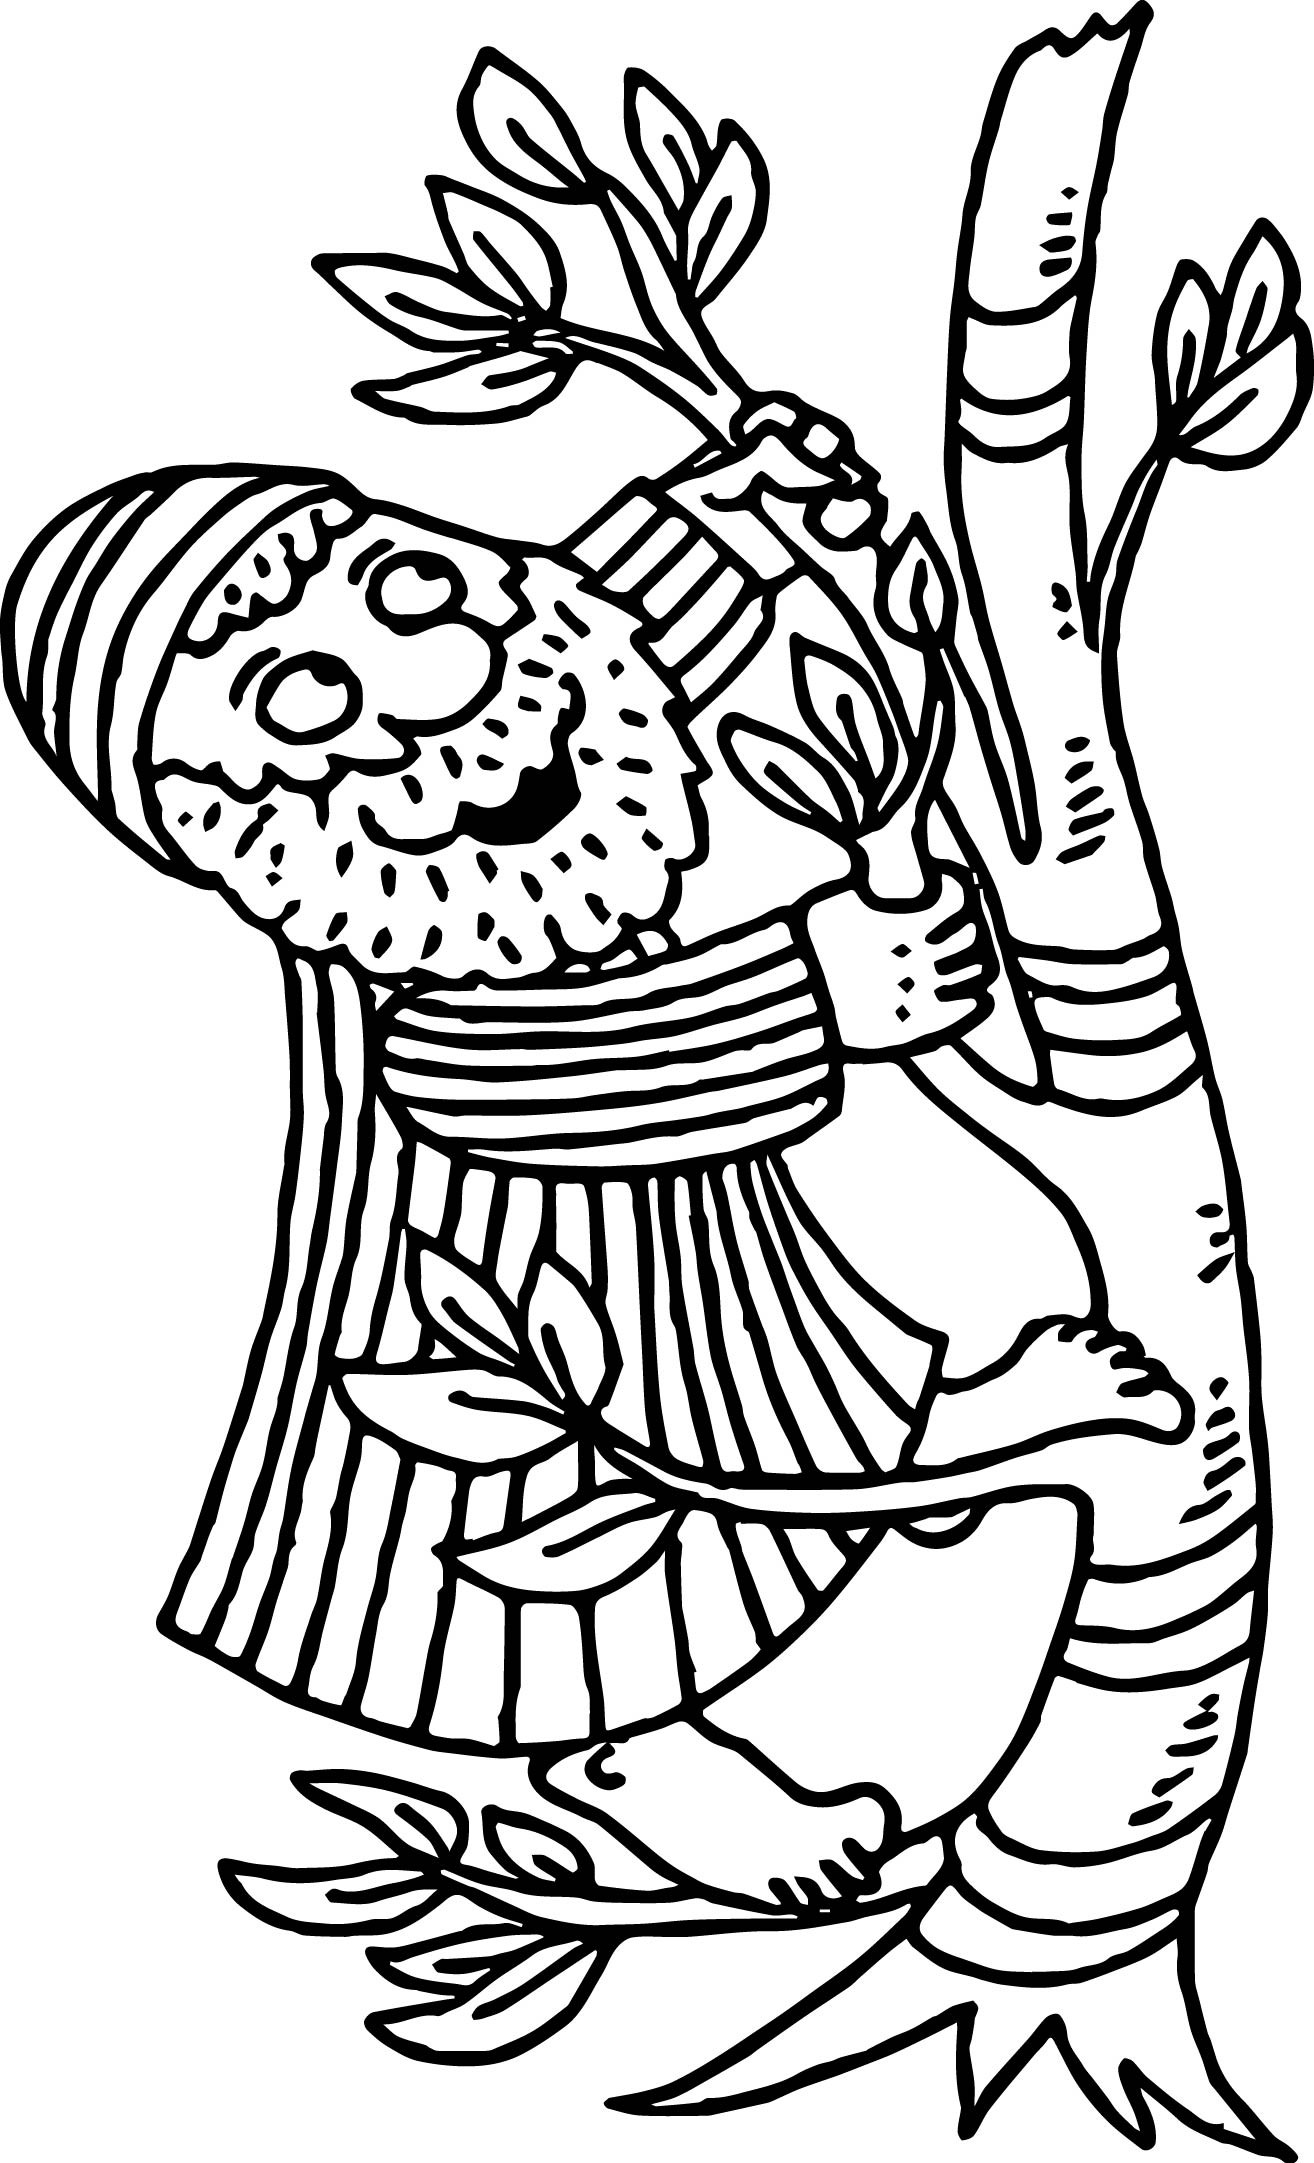 Coloring pages zacchaeus - Cartoon Zacchaeus Jesus Coloring Page